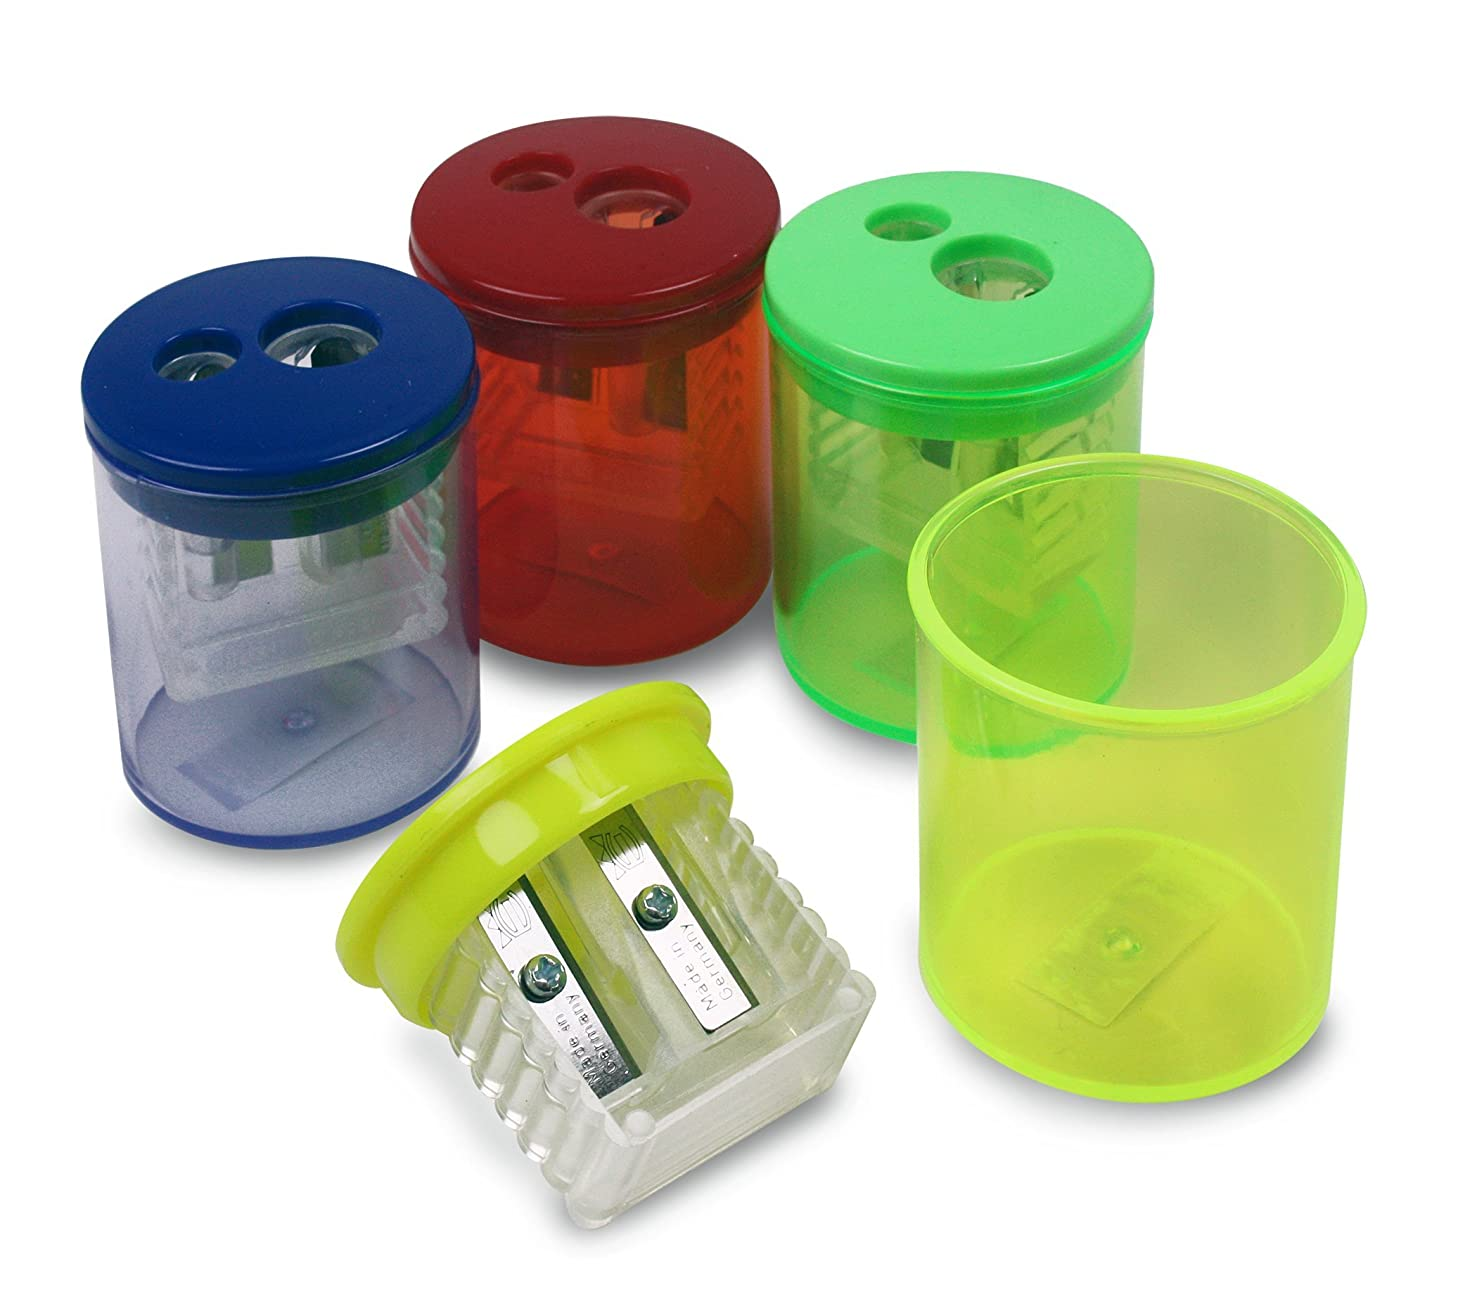 Eisen 12-pack Universal 2-Hole Sharpeners with German All Metal Blades, 1-7/8 x 1-1/2 Inches, Assorted Colors (ESN-51312)